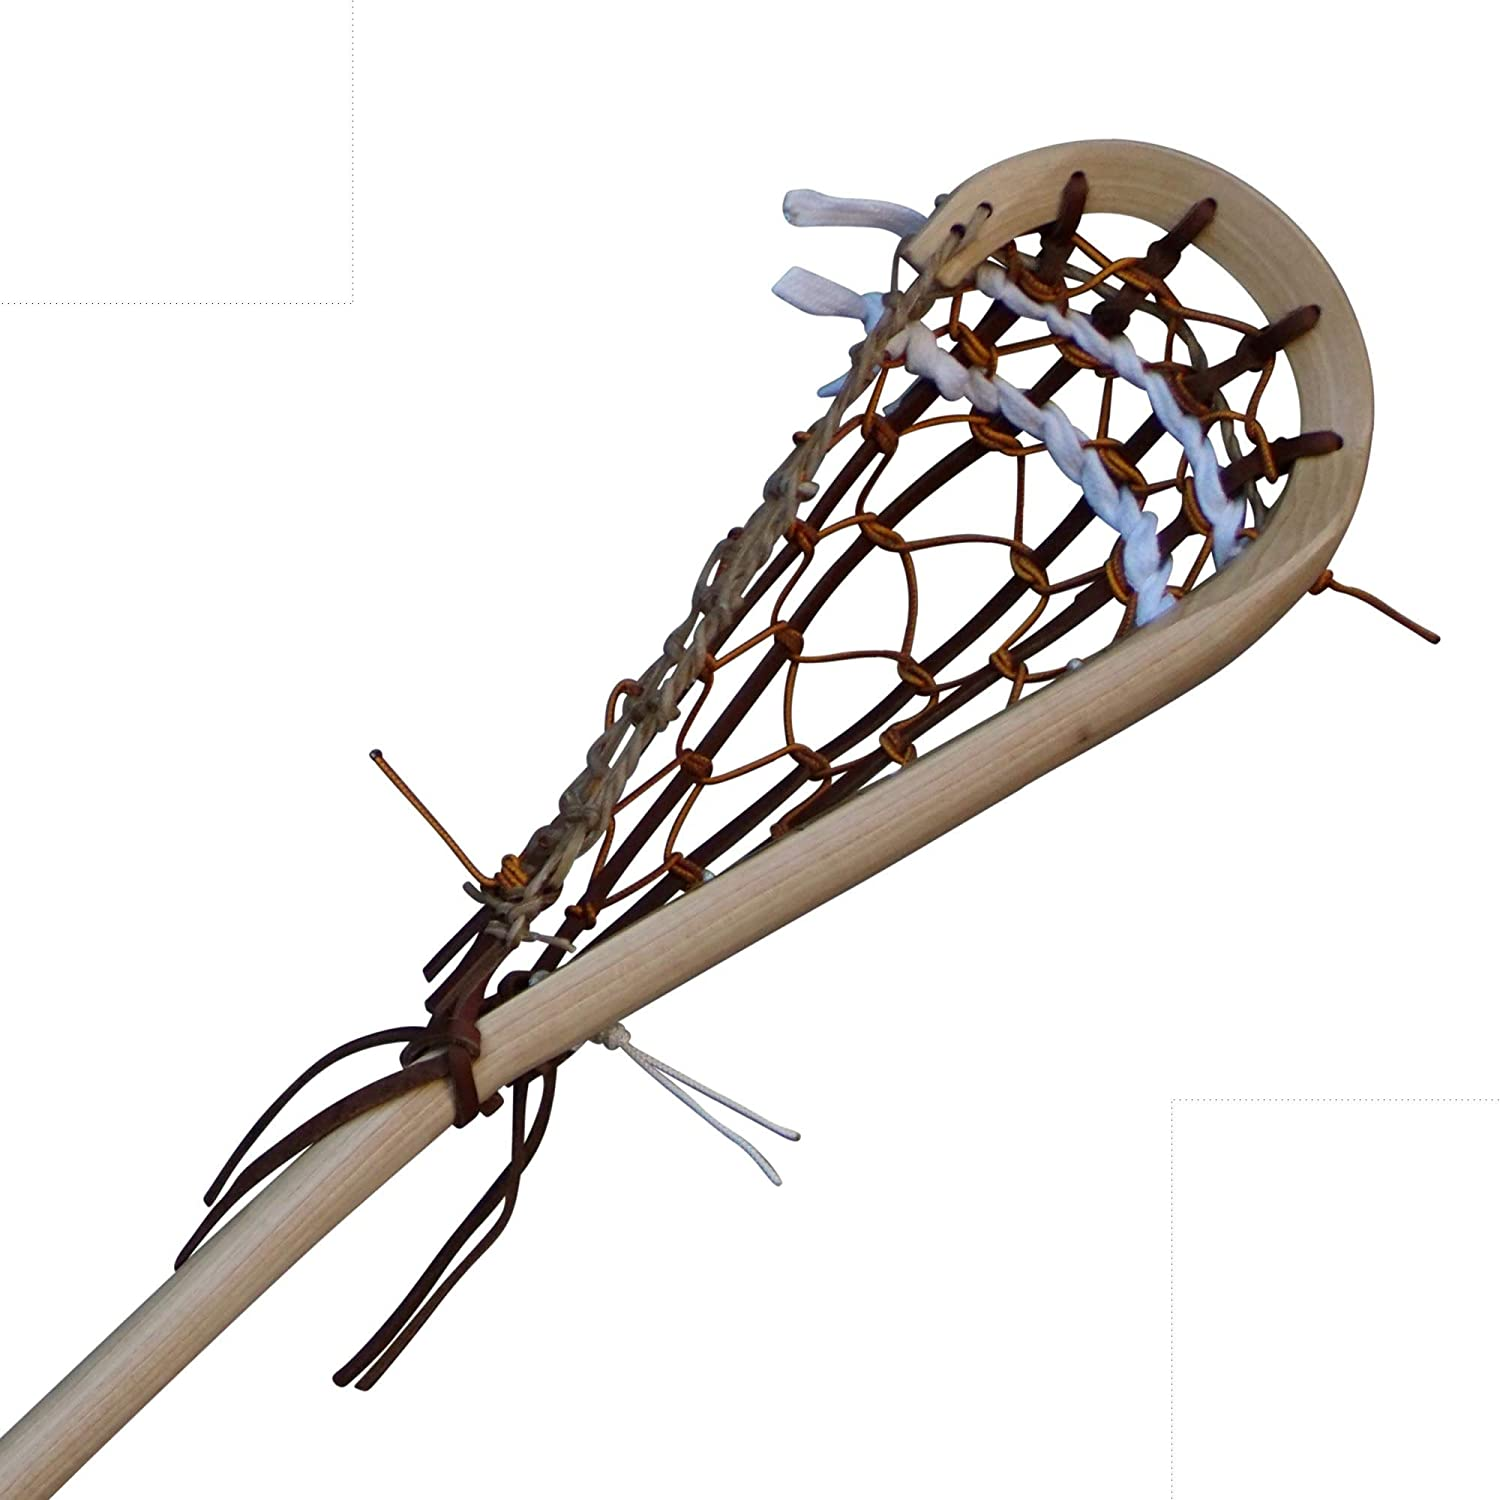 Wooden Lacrosse Stick - BOX PRO - Boot Lace - by Justin Skaggs